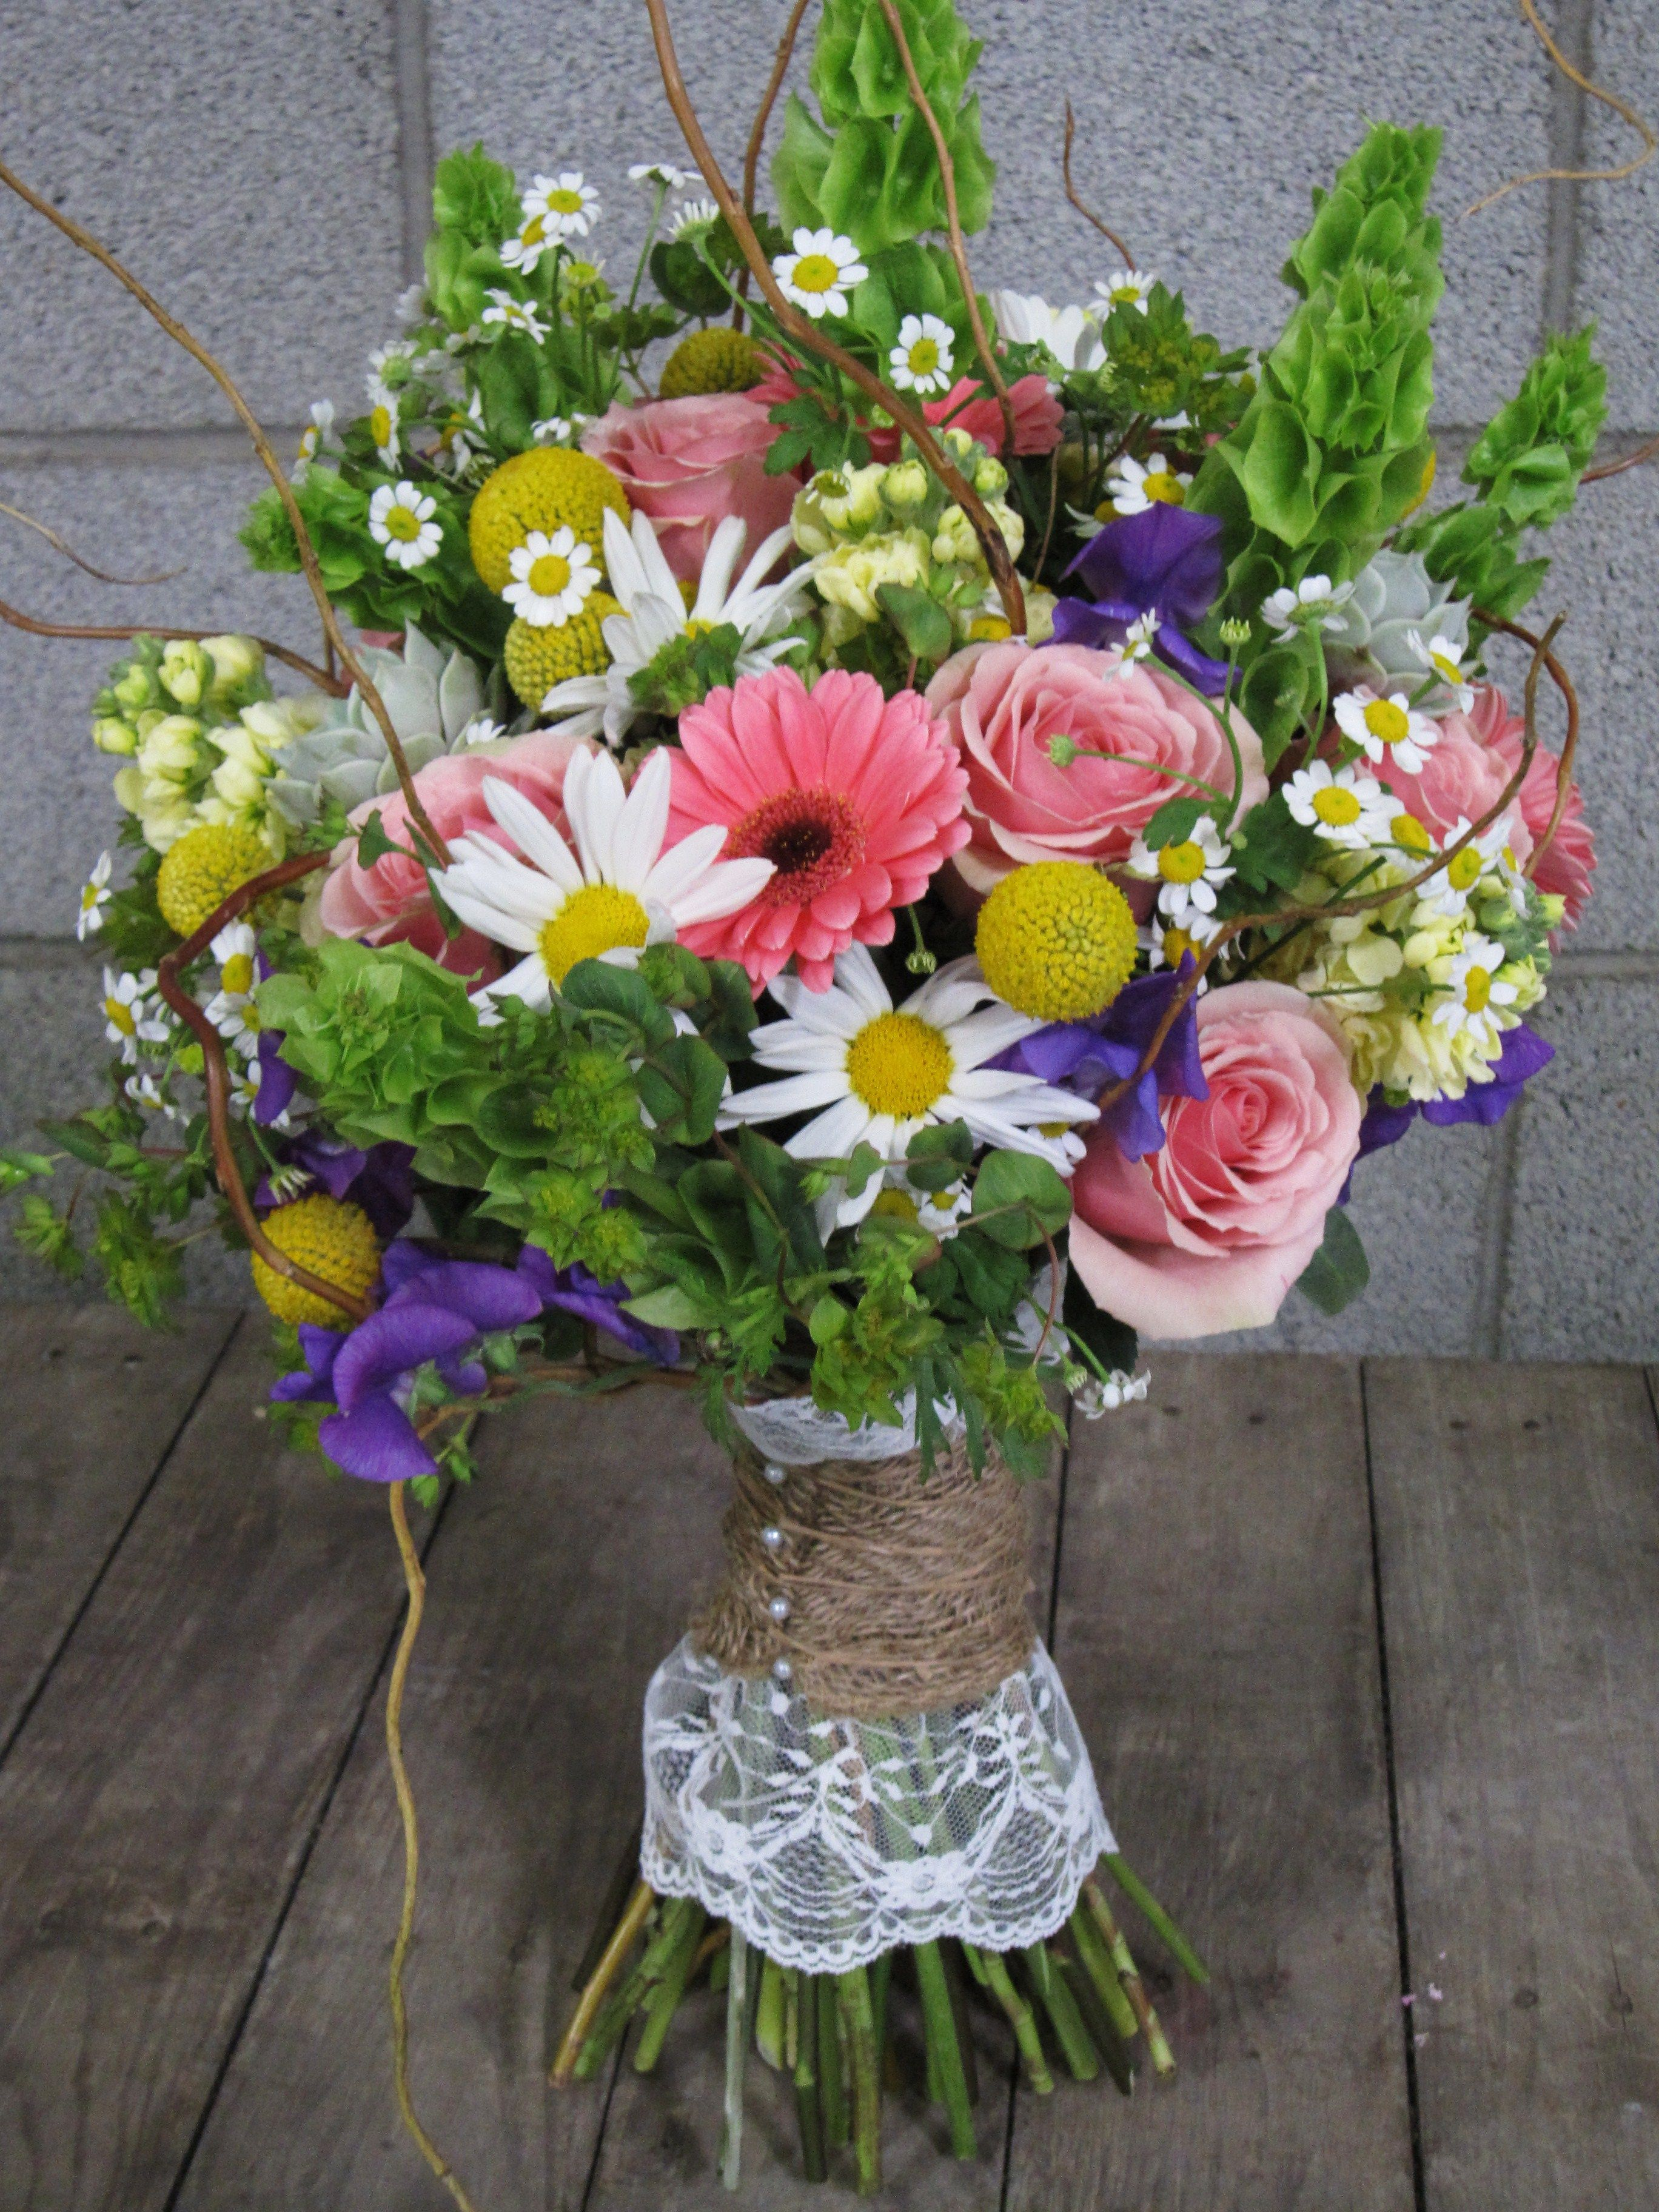 Whimsical, wildflower bouquet by Fleurt Floral Art